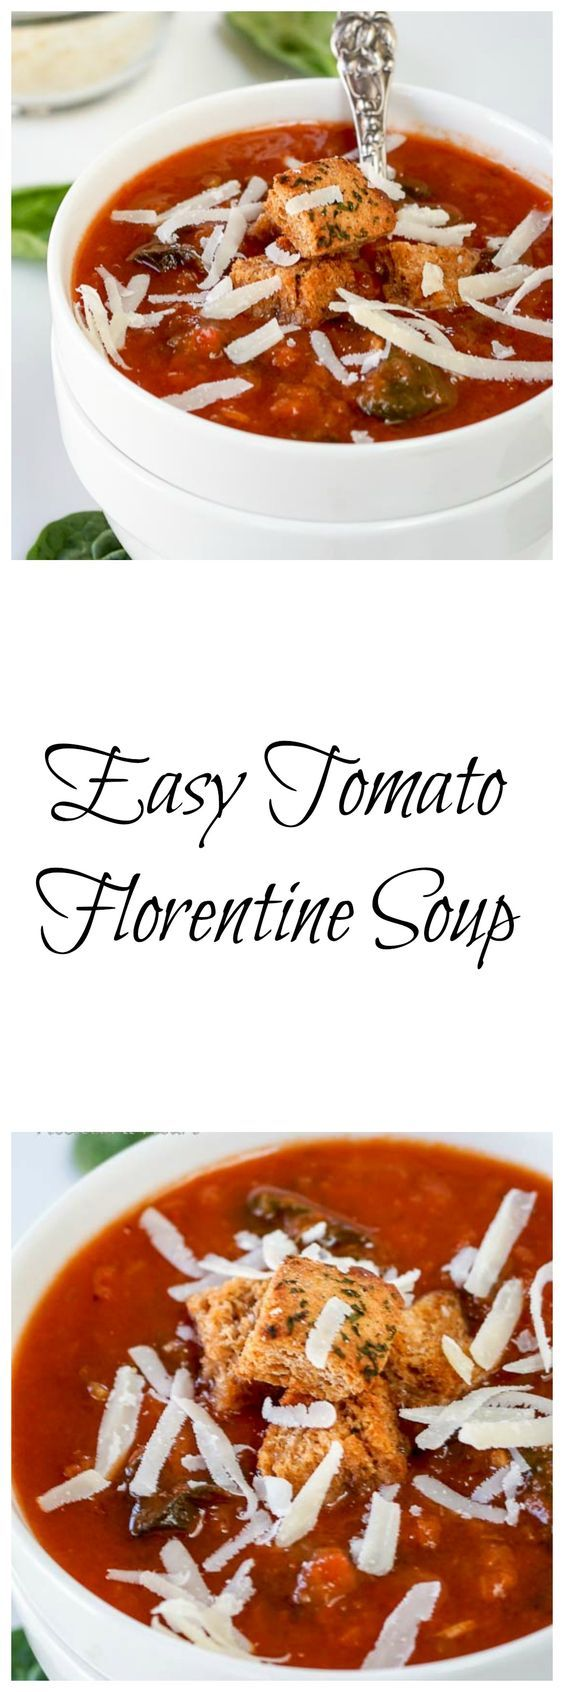 Tomato florentine soup, Tomatoes and Soups on Pinterest